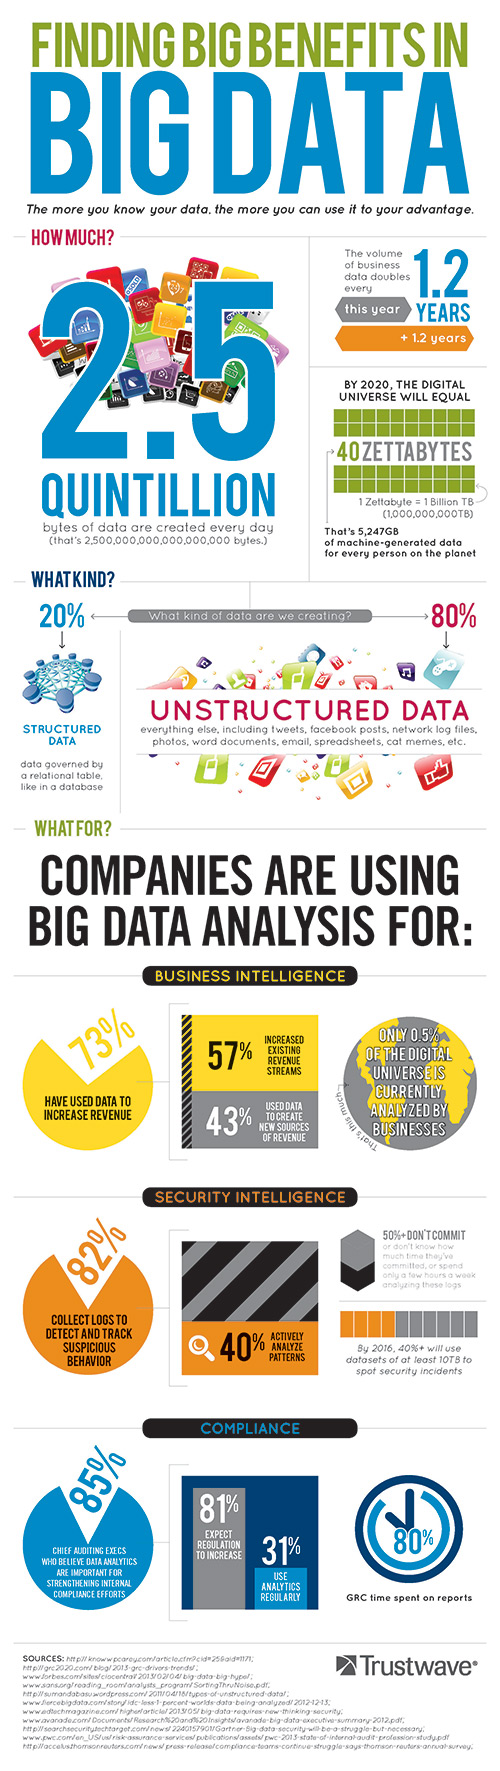 Trustwave Big Data - Infographic